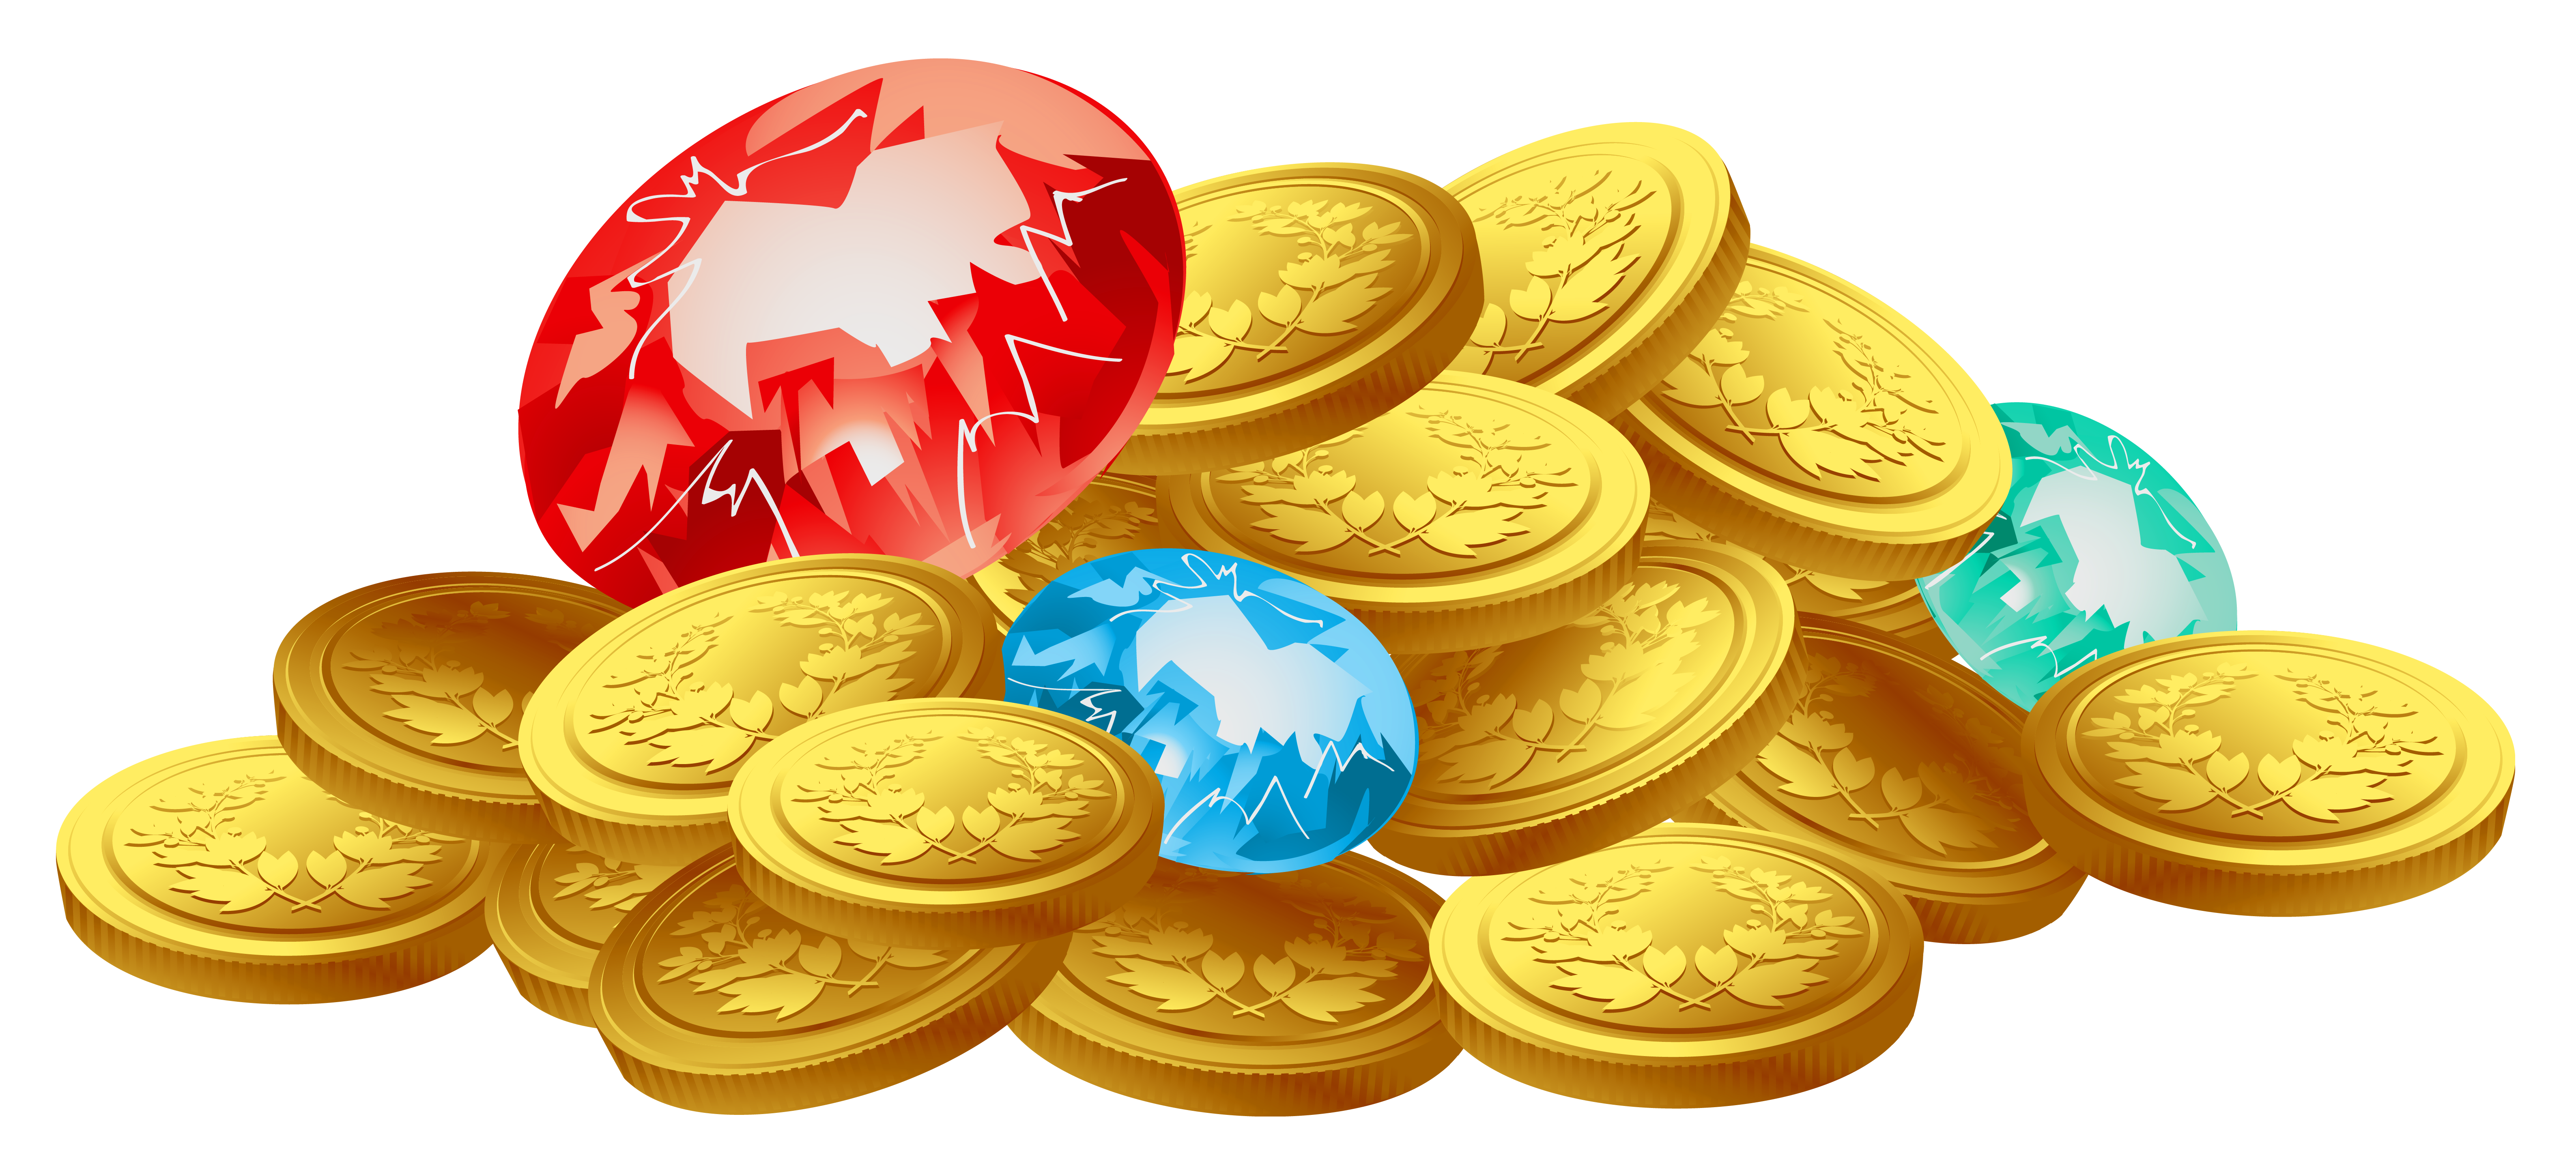 Treasure clipart legend And clipart Gold Coins Gold